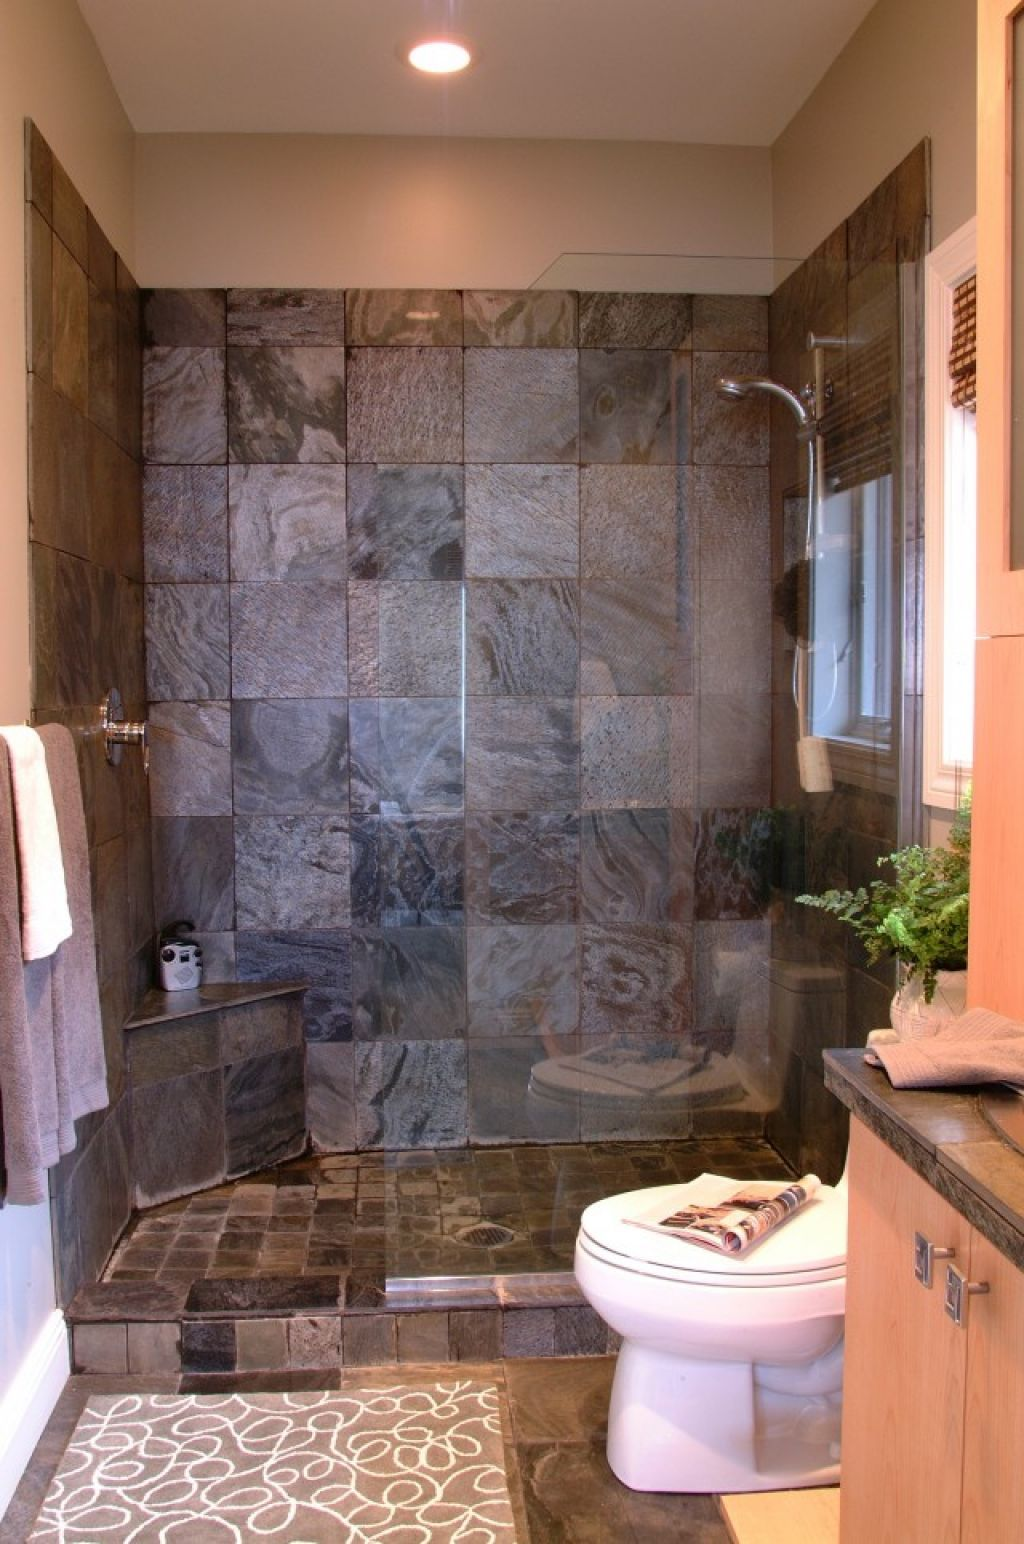 Bathroom ideas of doorless walk in shower for small - Bathroom shower designs small spaces ...